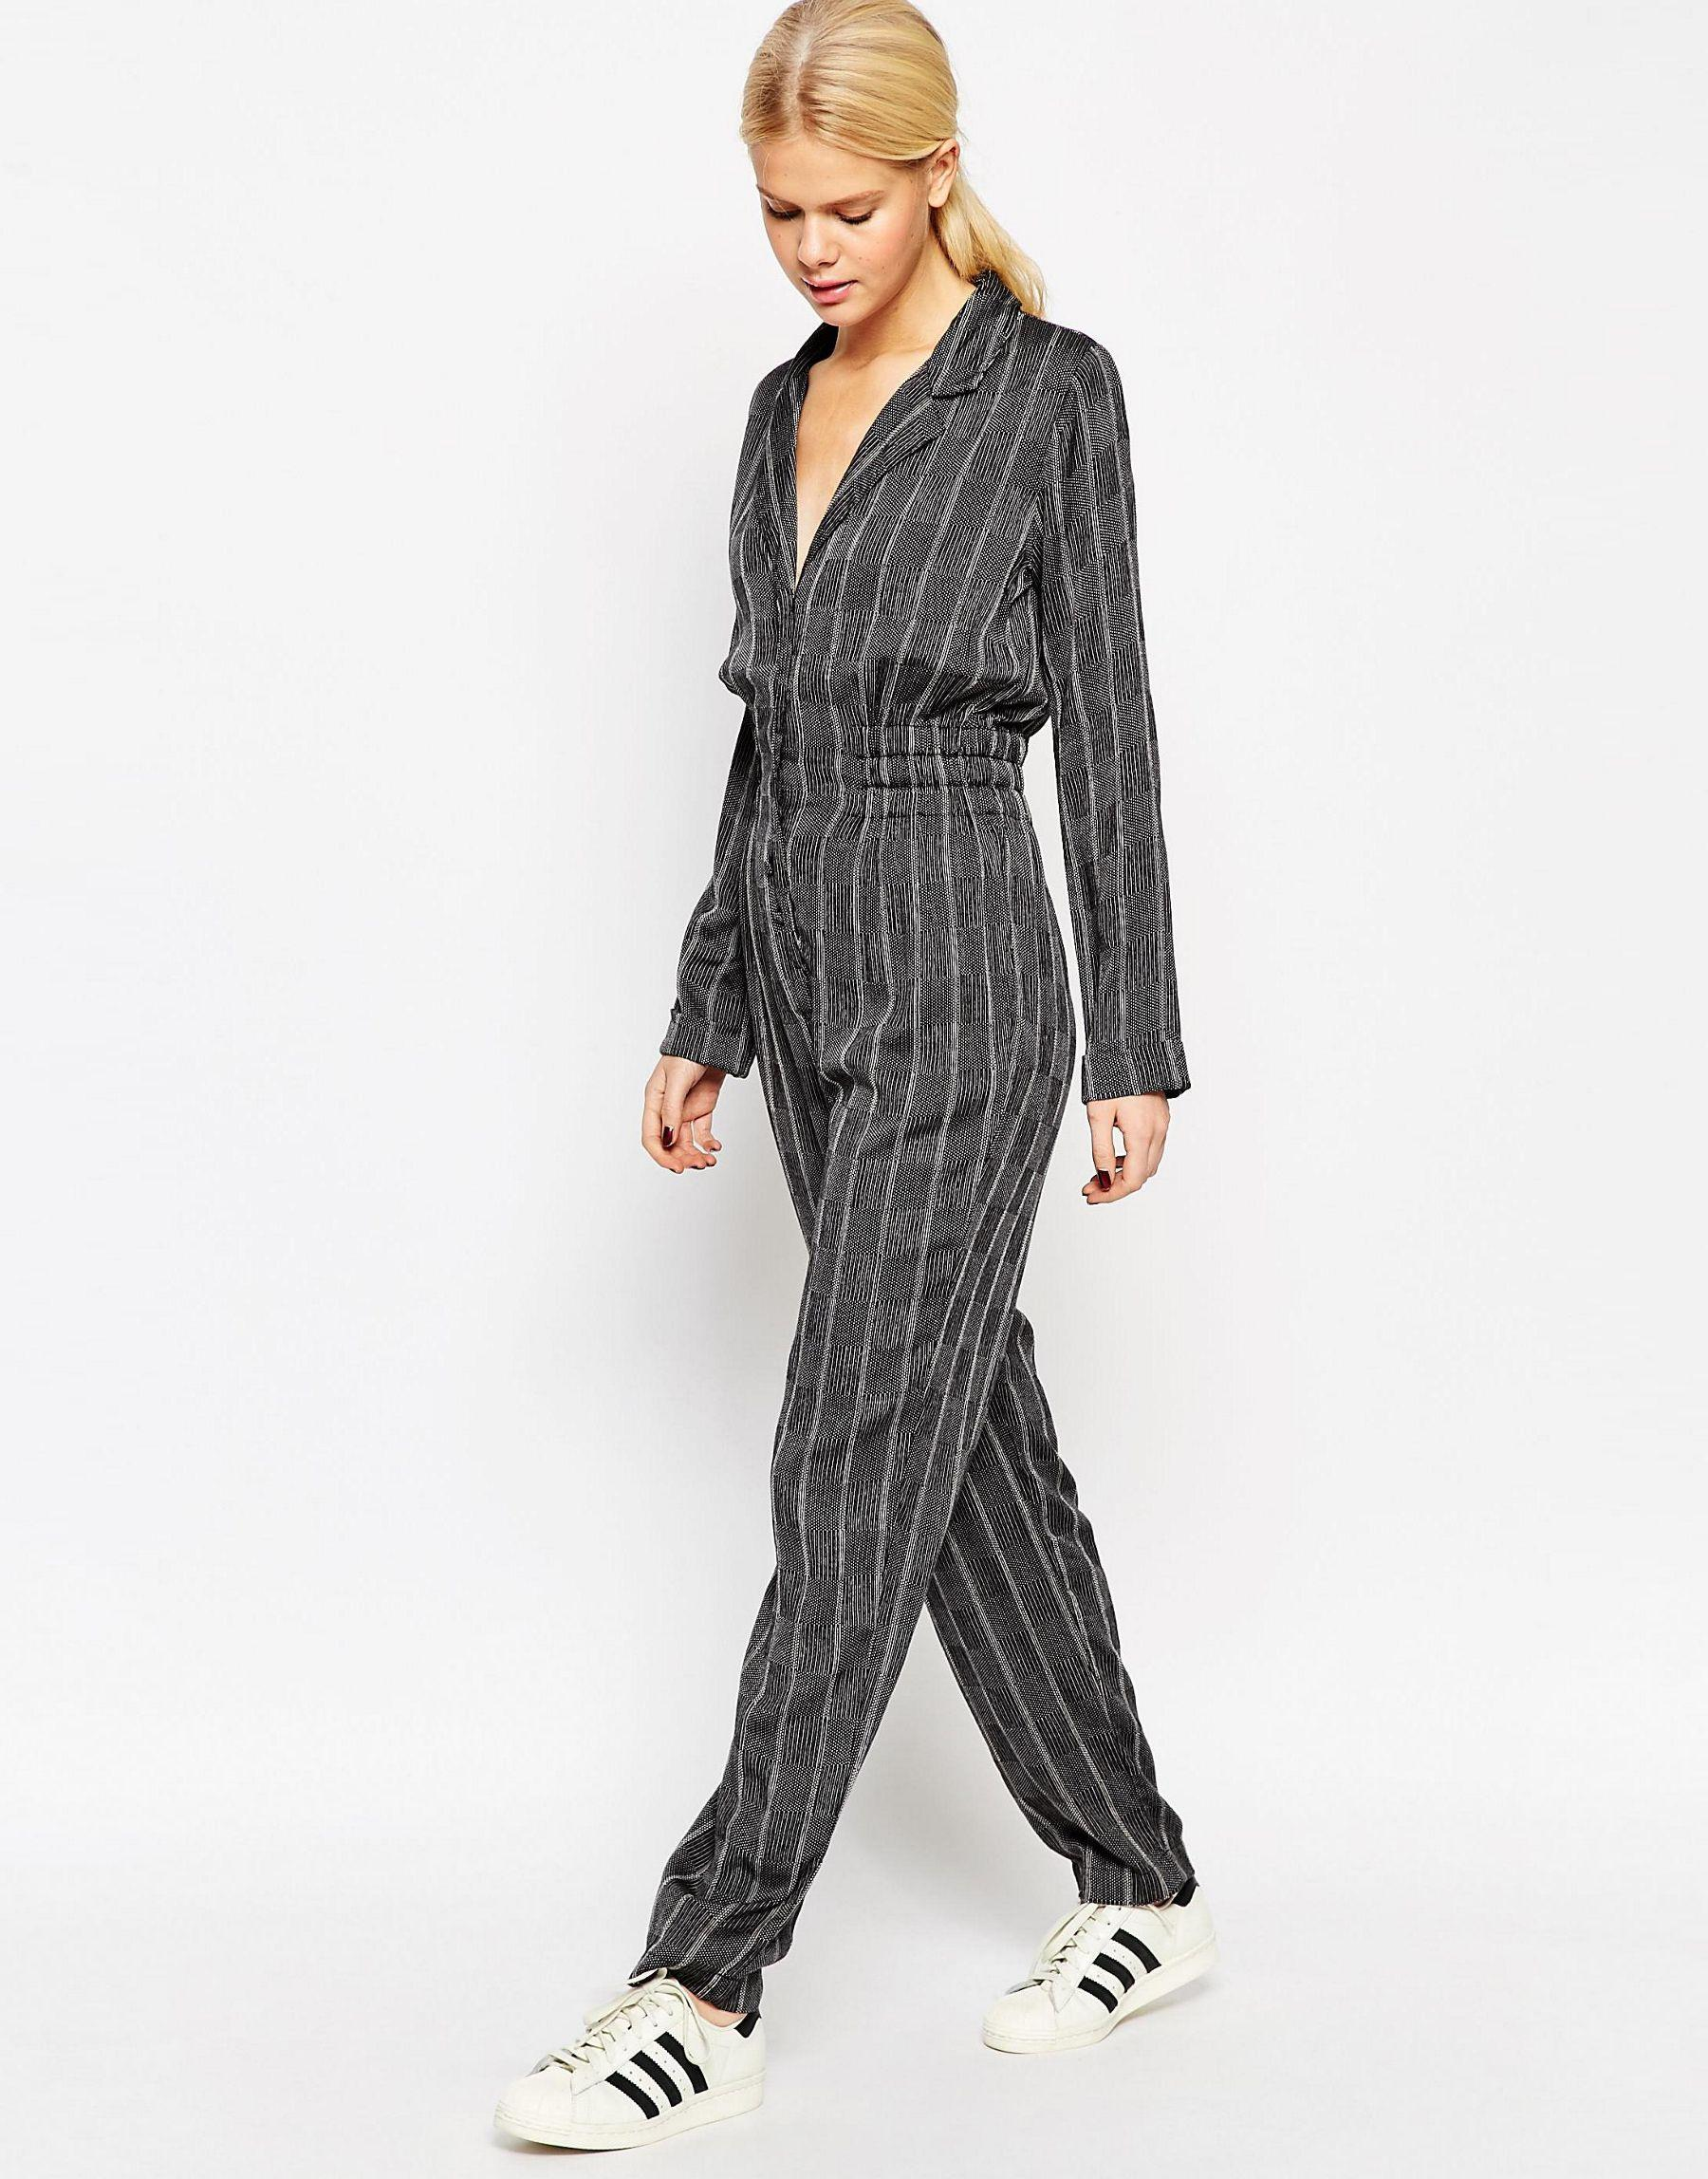 Asos Womens Button Front Gathered Waist Jumpsuit Mono - Jumpsuits & Rompers